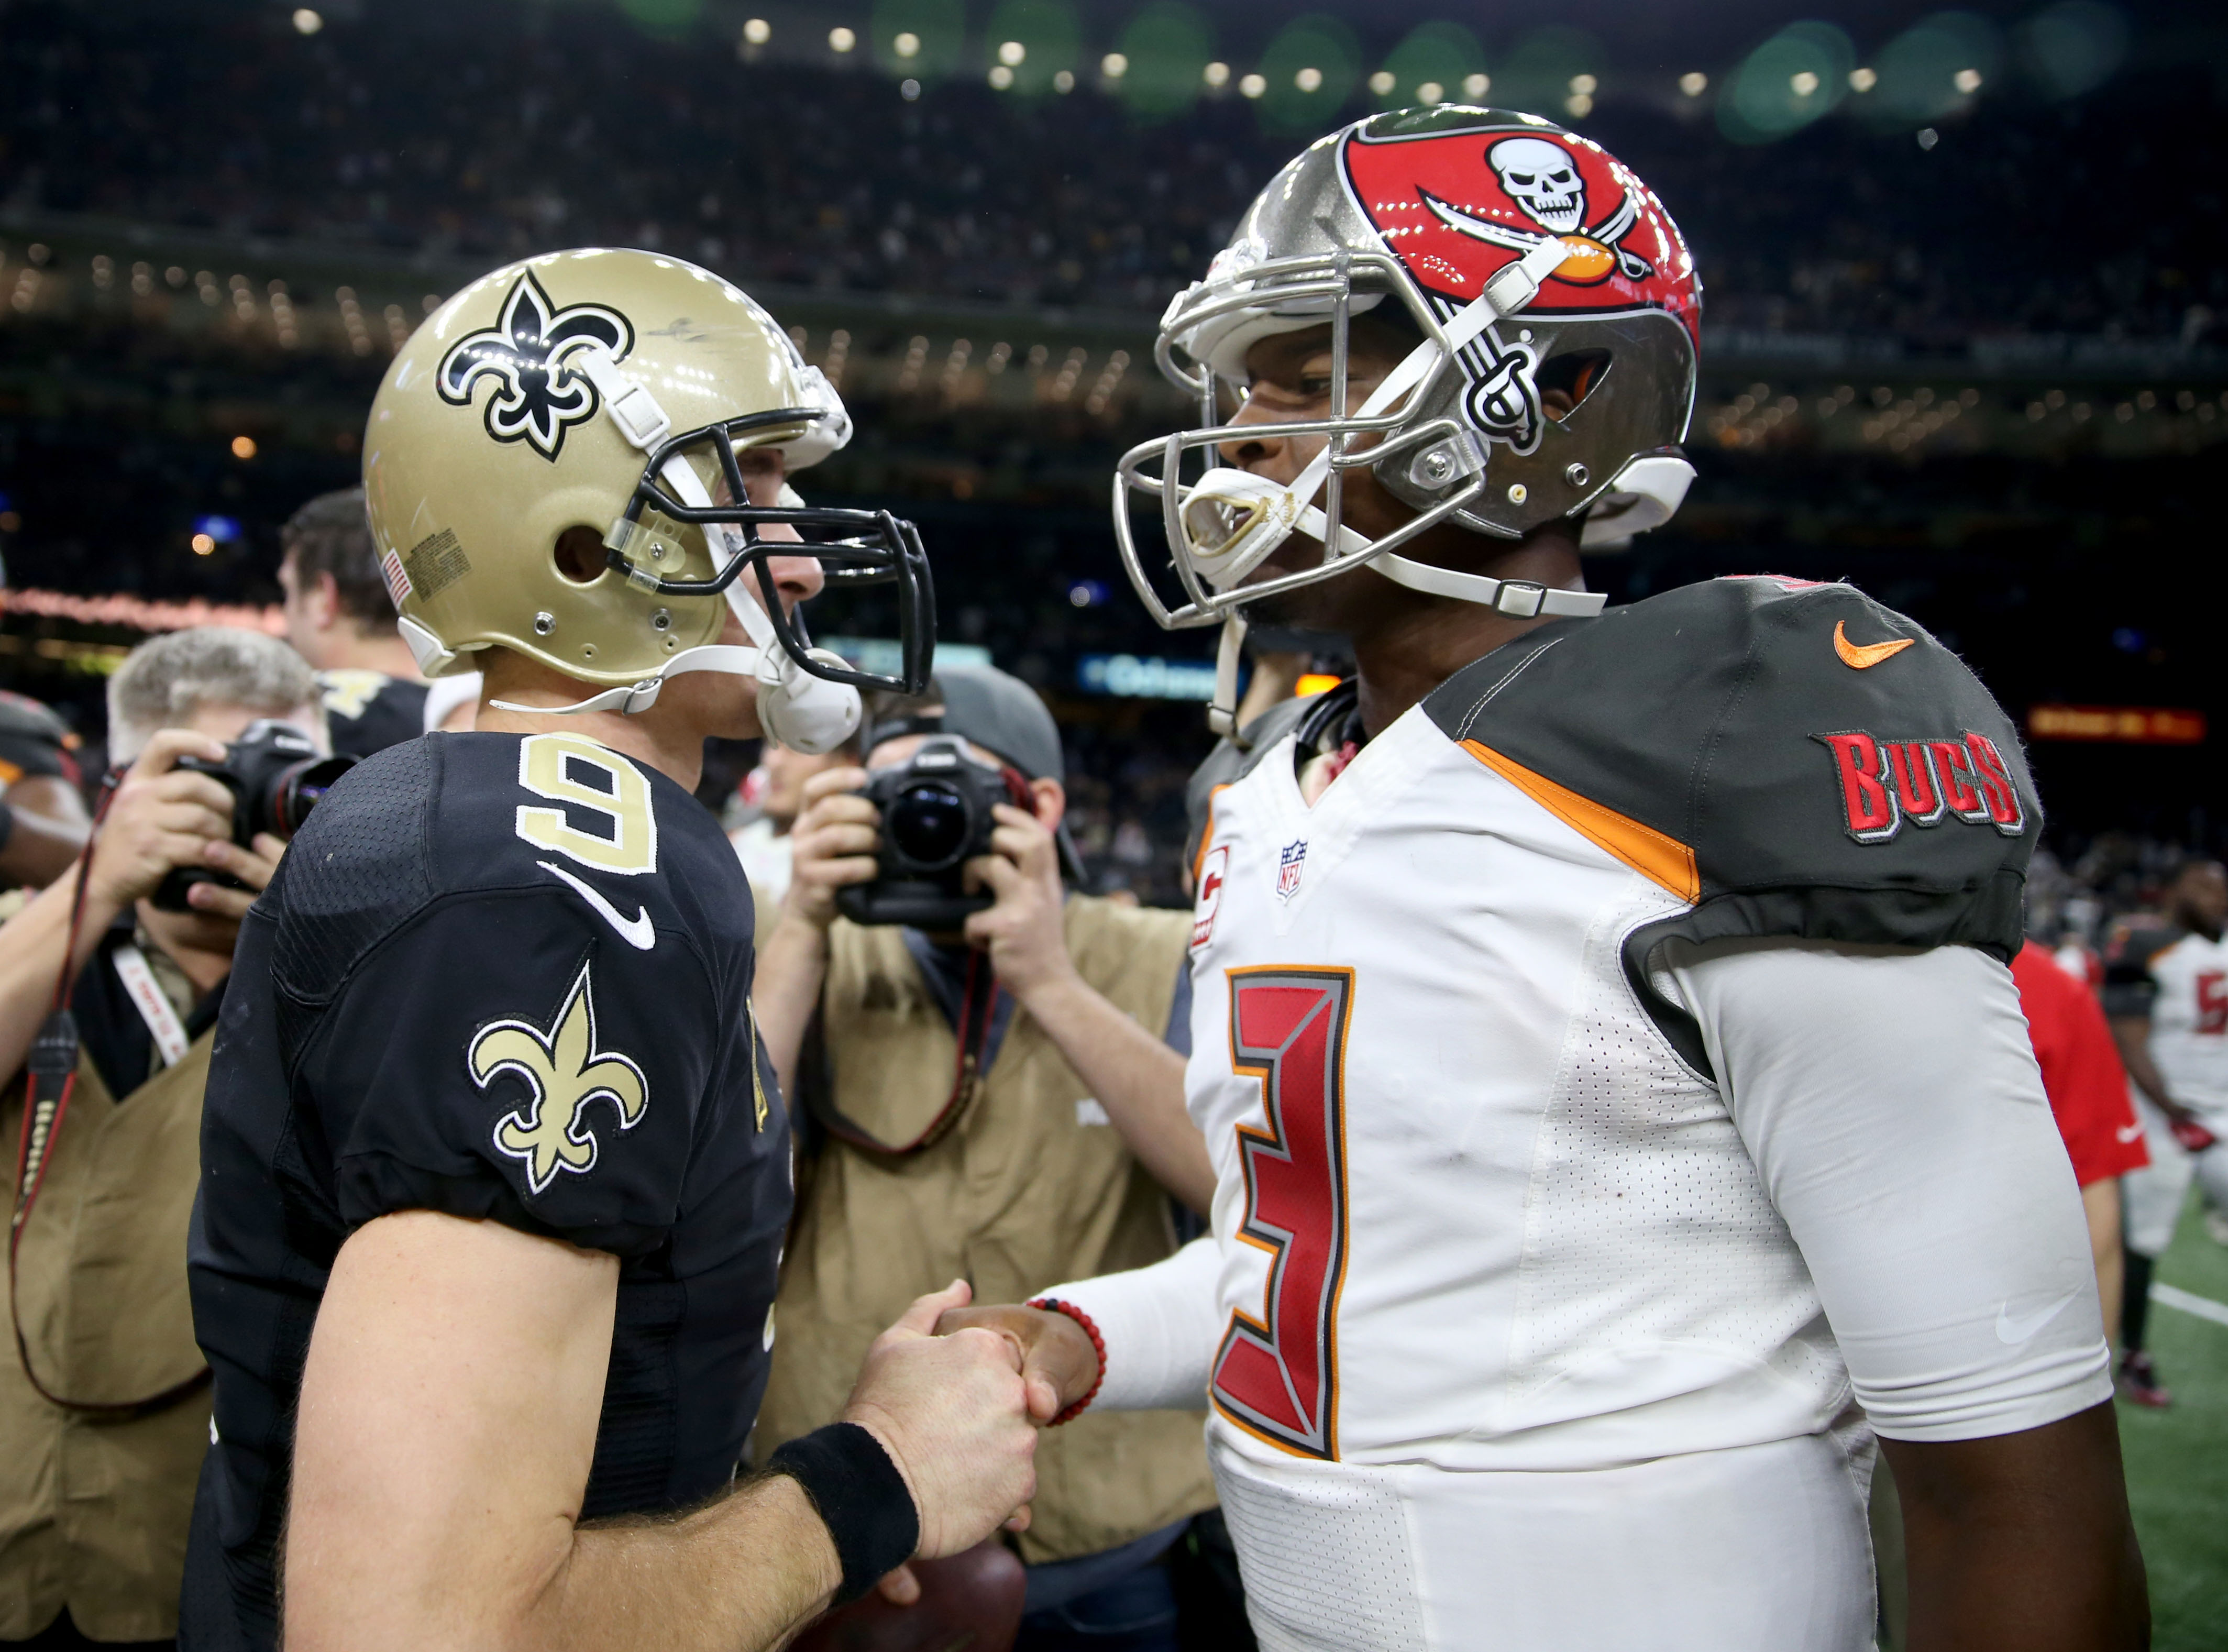 9767593-nfl-tampa-bay-buccaneers-at-new-orleans-saints